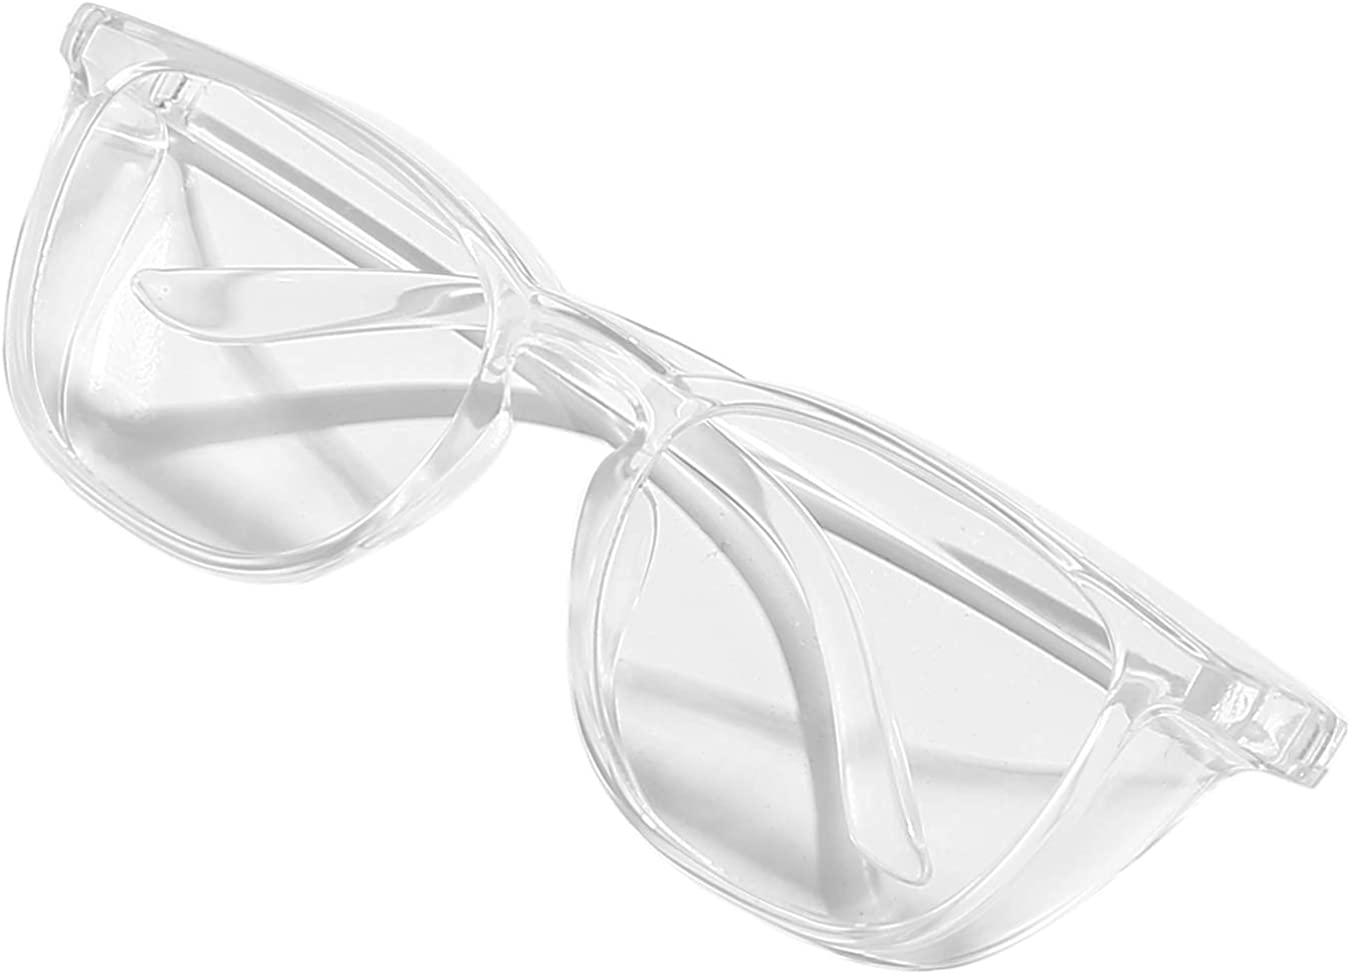 Safety Glasses Anti Fog for Men Womens Blue Light Blocking Eye Protection Goggles with Side Shields